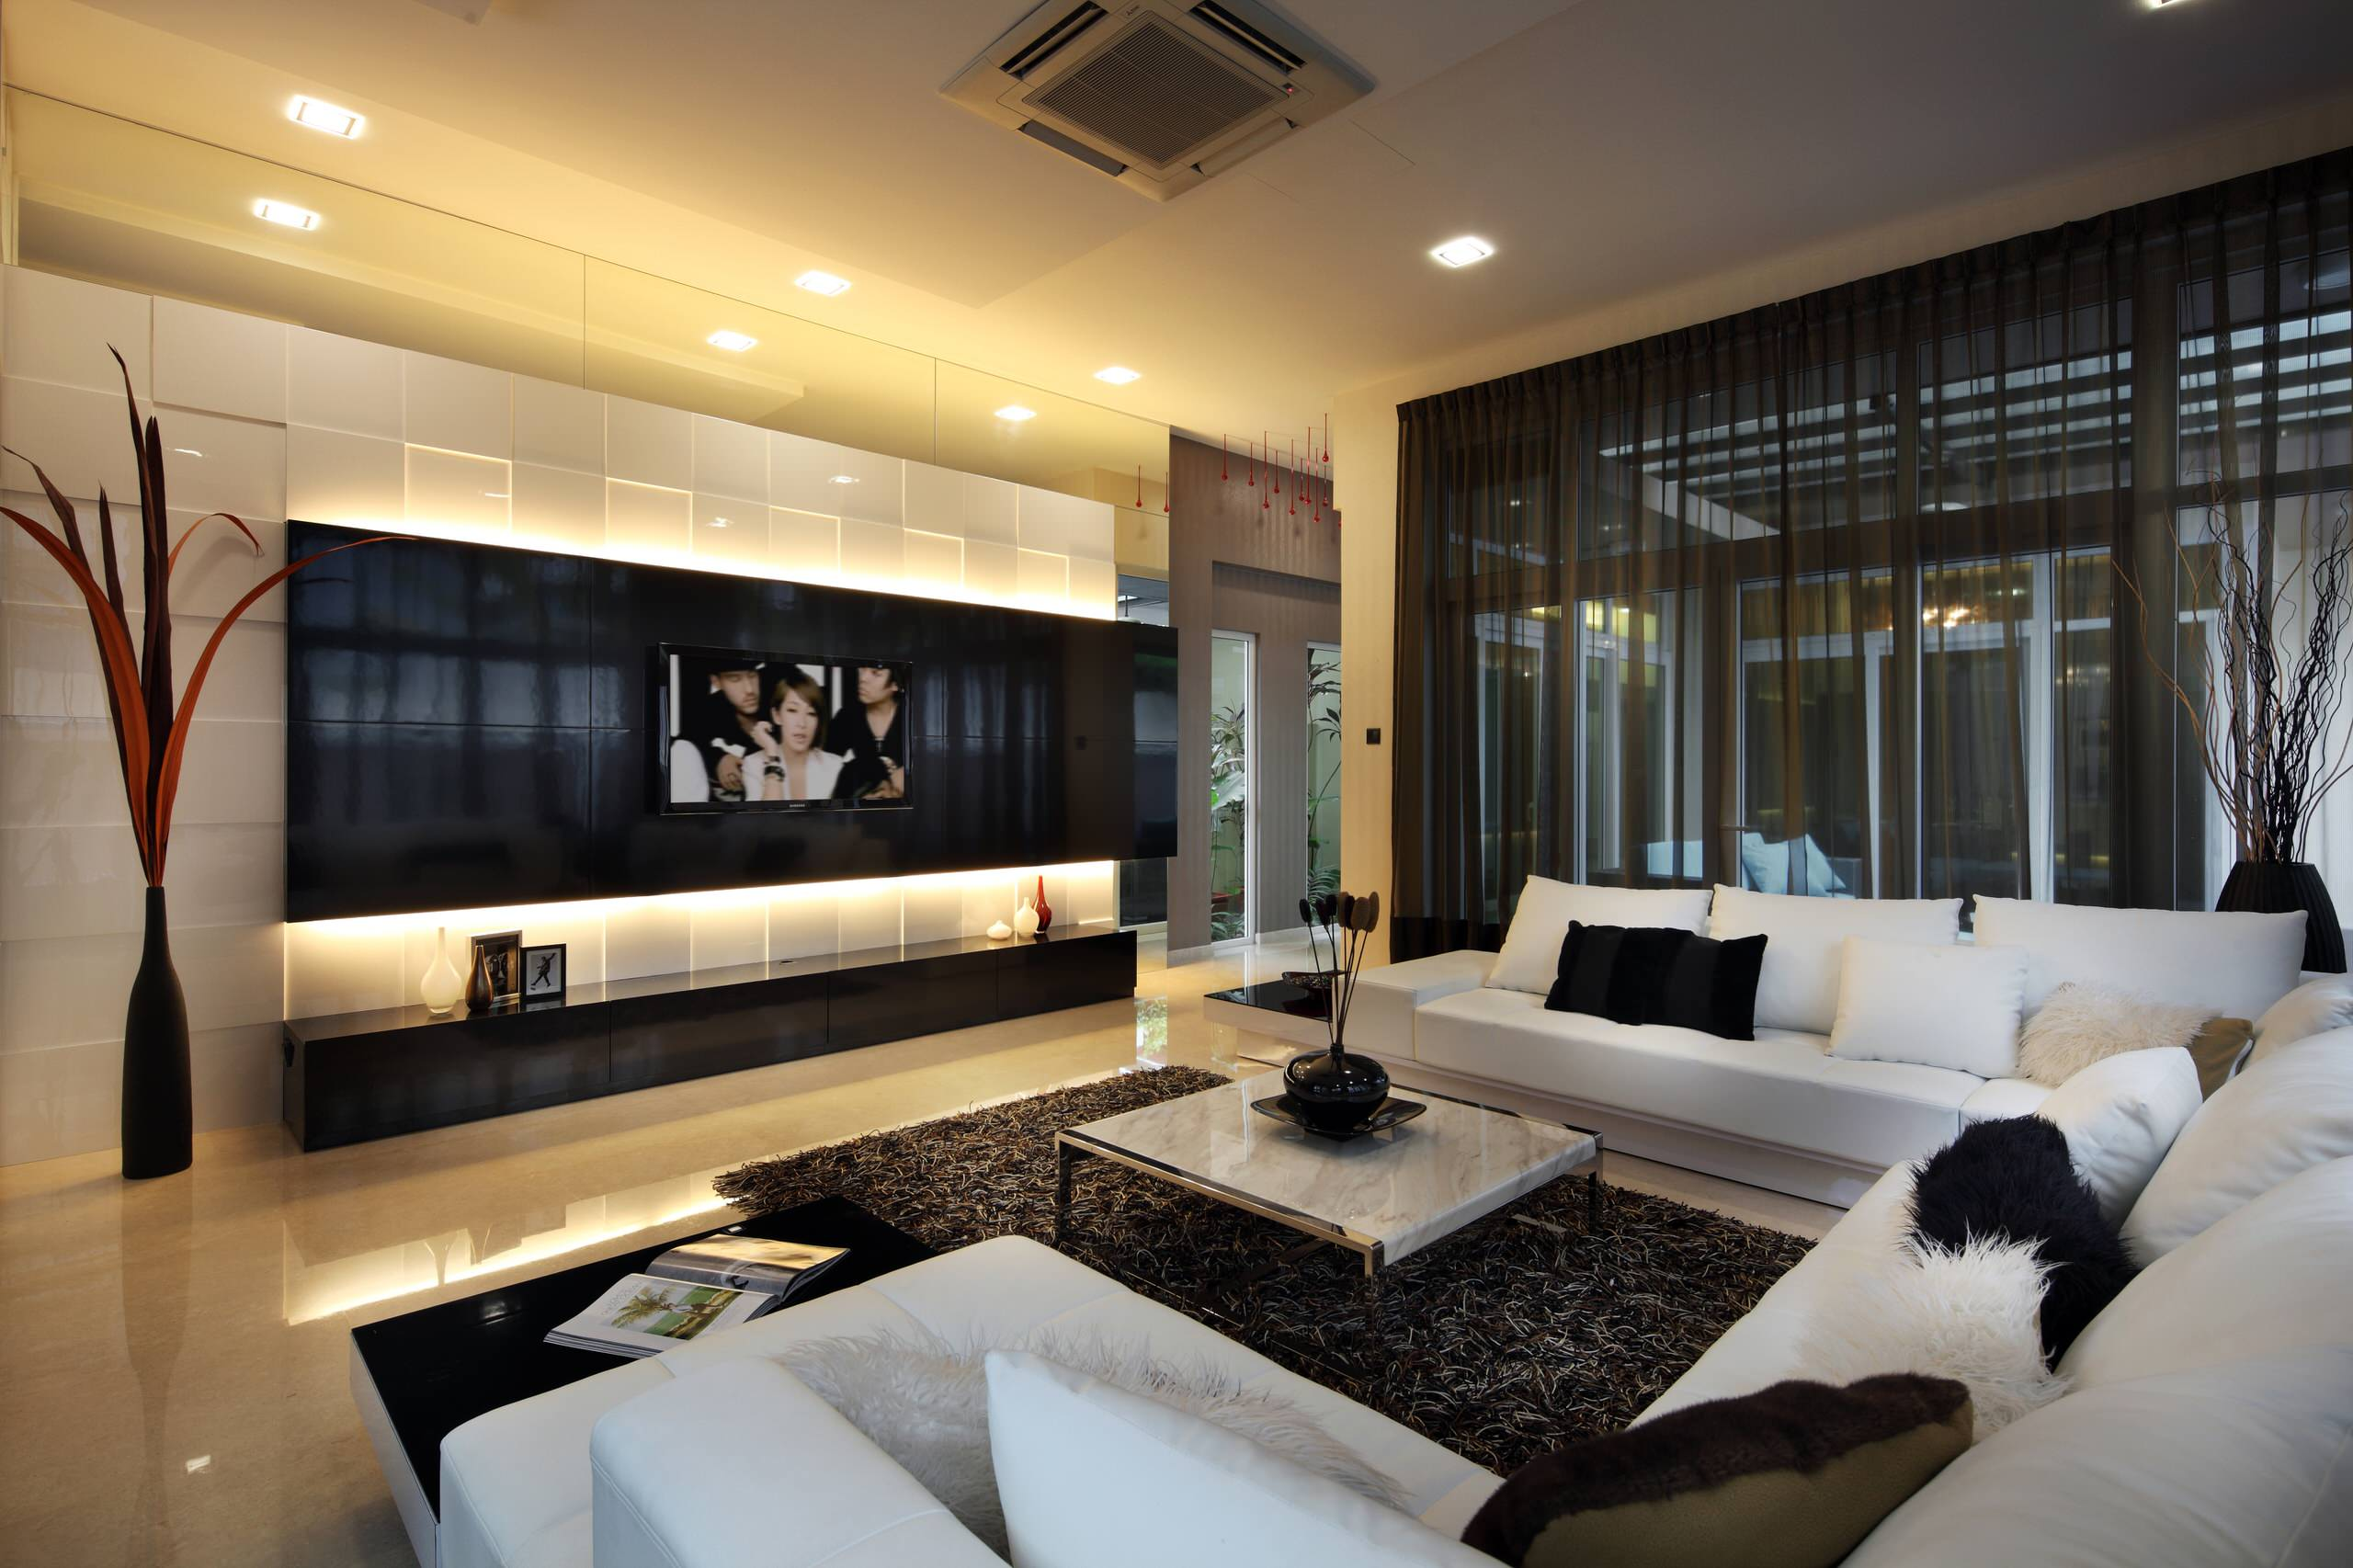 75 Beautiful Living Room With A Media Wall Pictures Ideas April 2021 Houzz